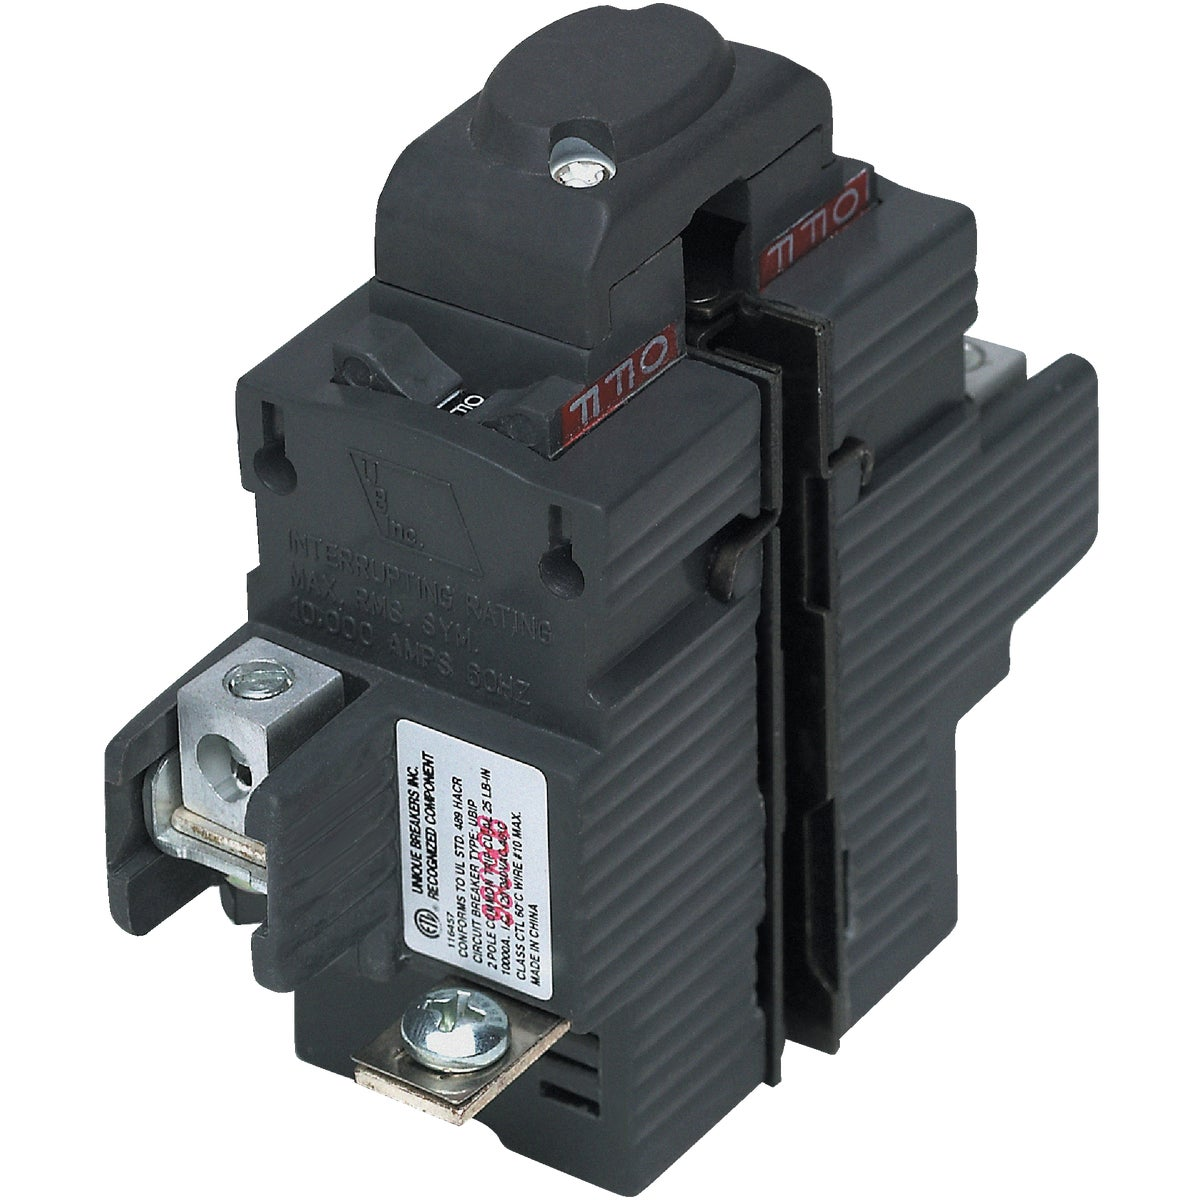 40A 2P CIRCUIT BREAKER - UBIP240 by Connecticut Electric